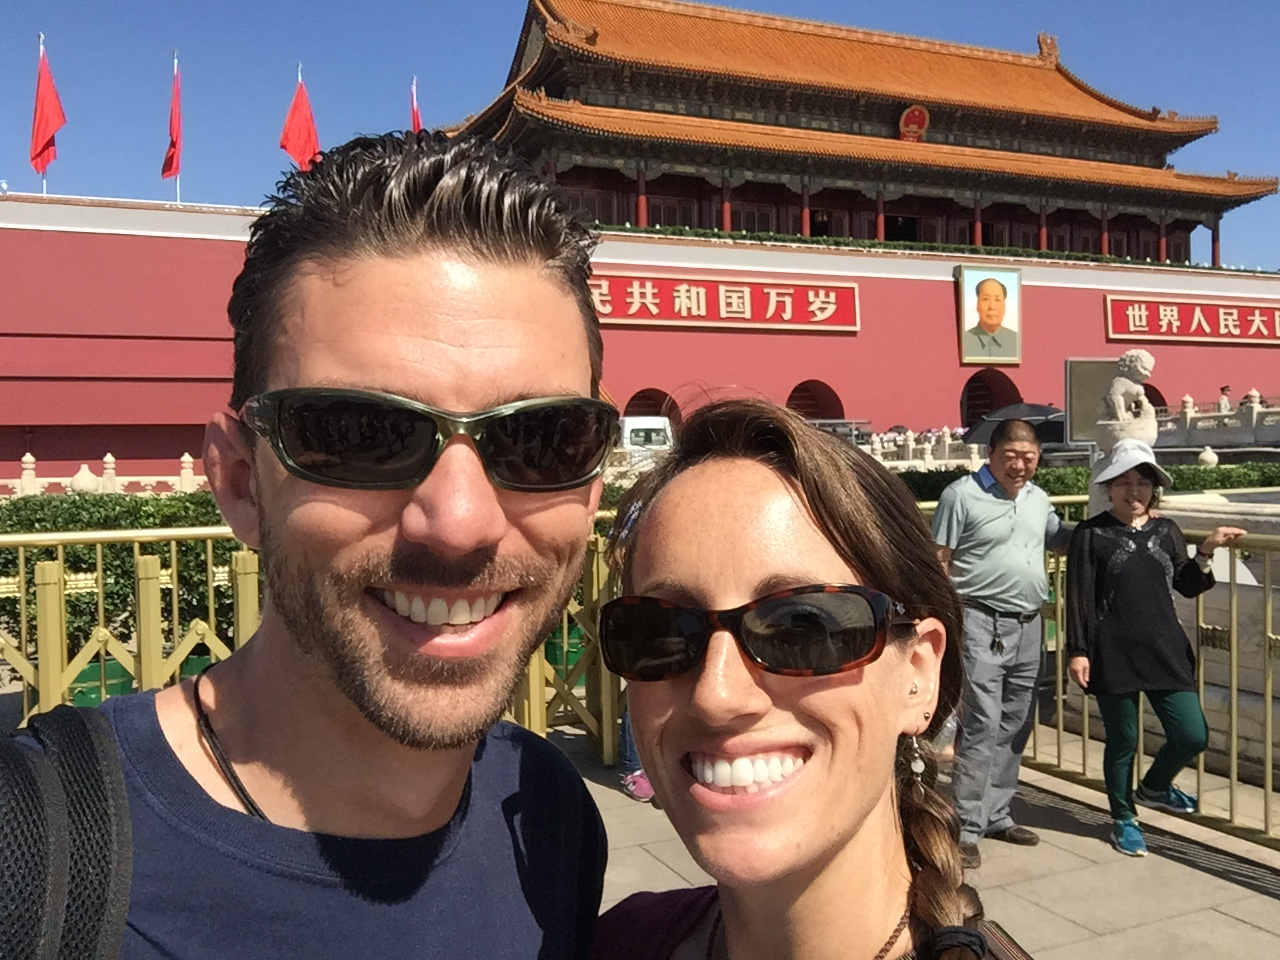 Me, Ryan, and Chairman Mao at the Forbidden City.